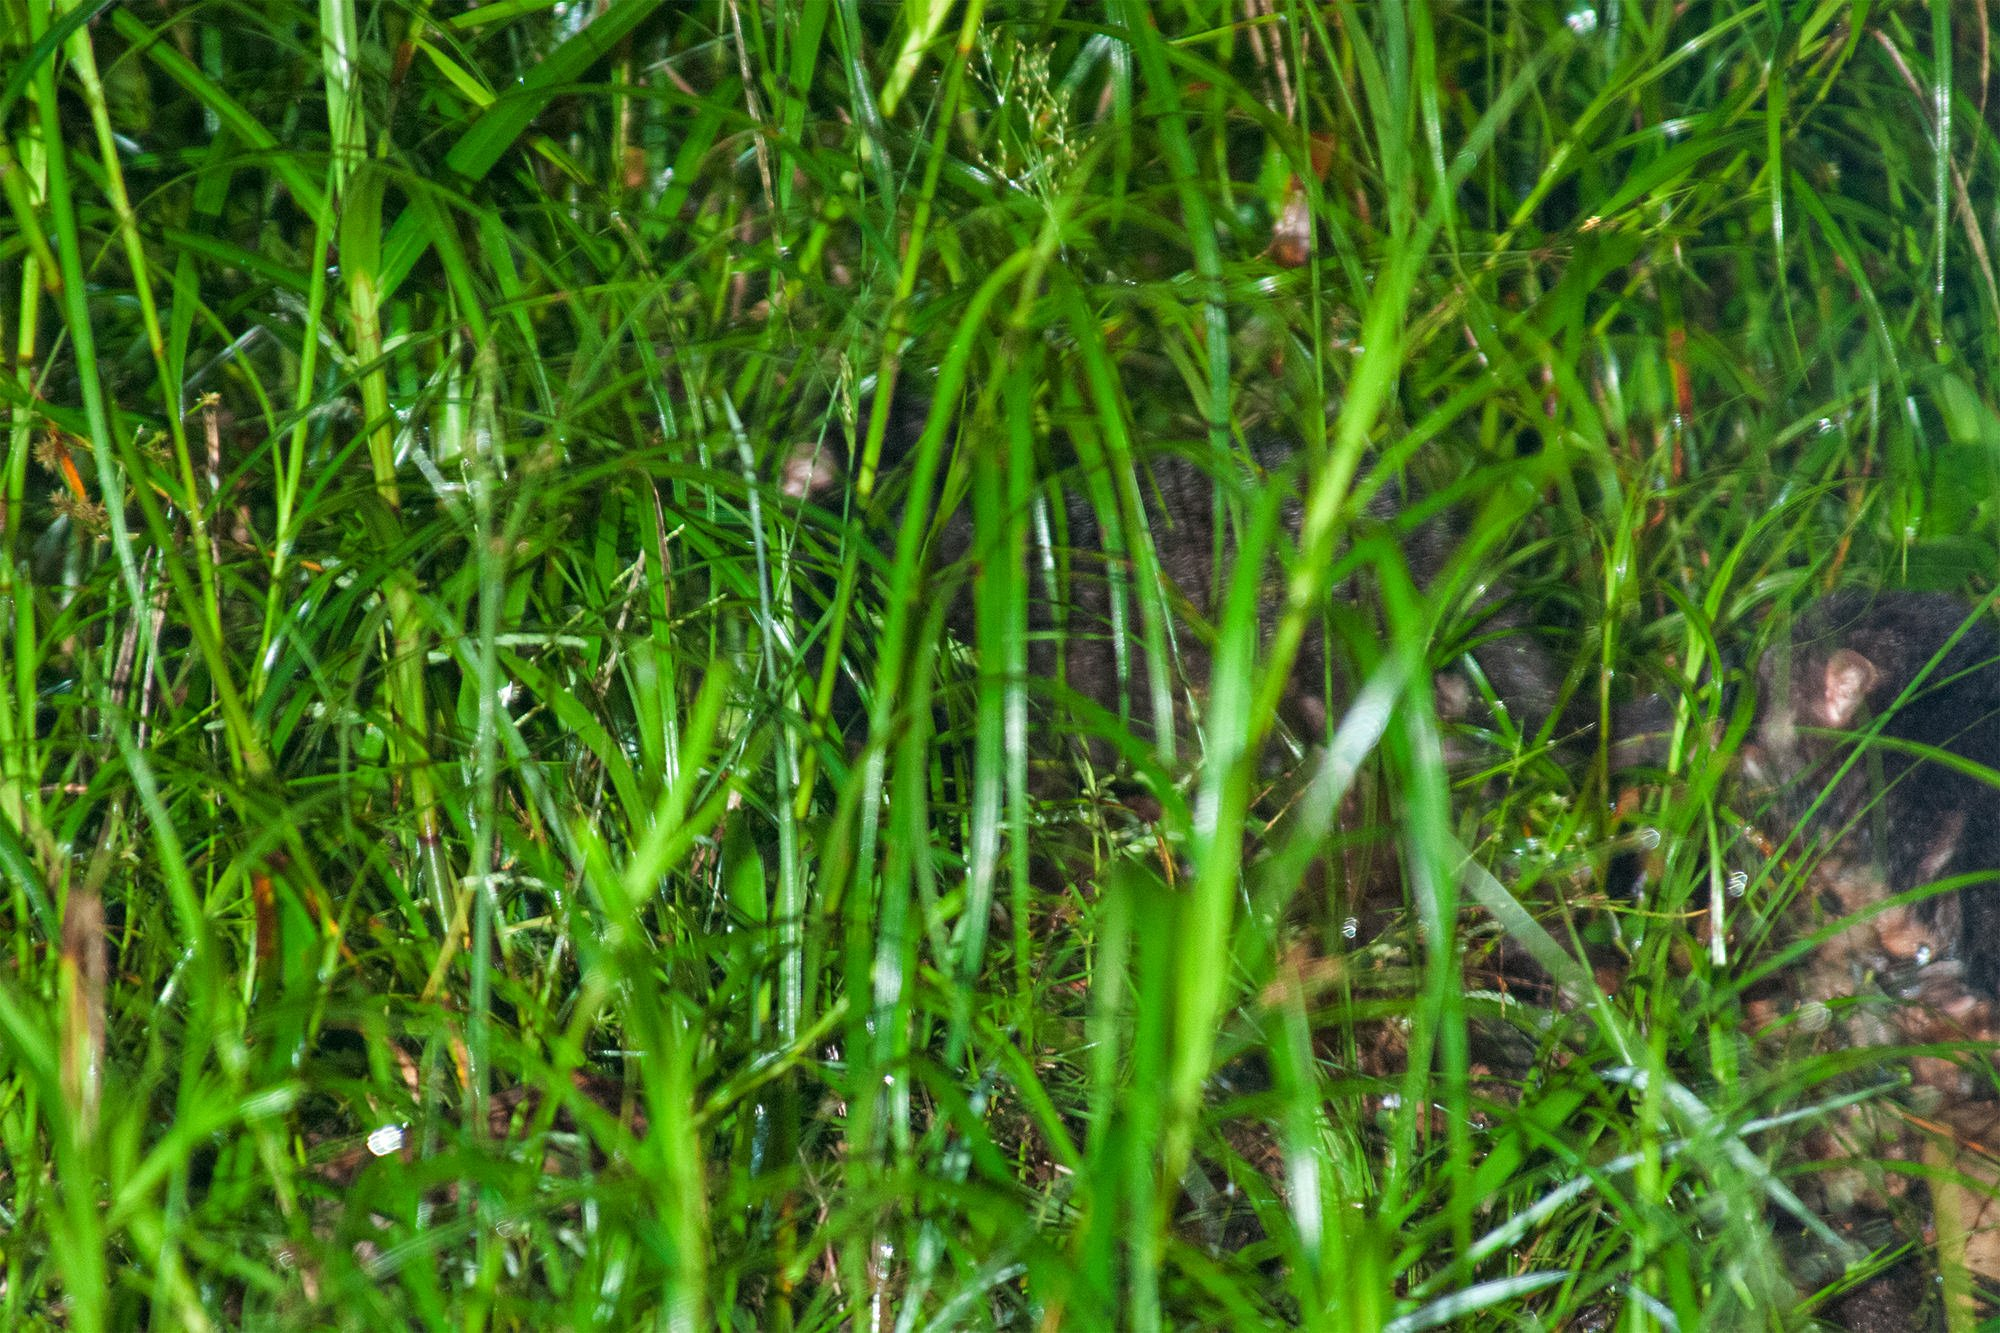 Wildlife of Deramakot - otter civets hiding in the grass